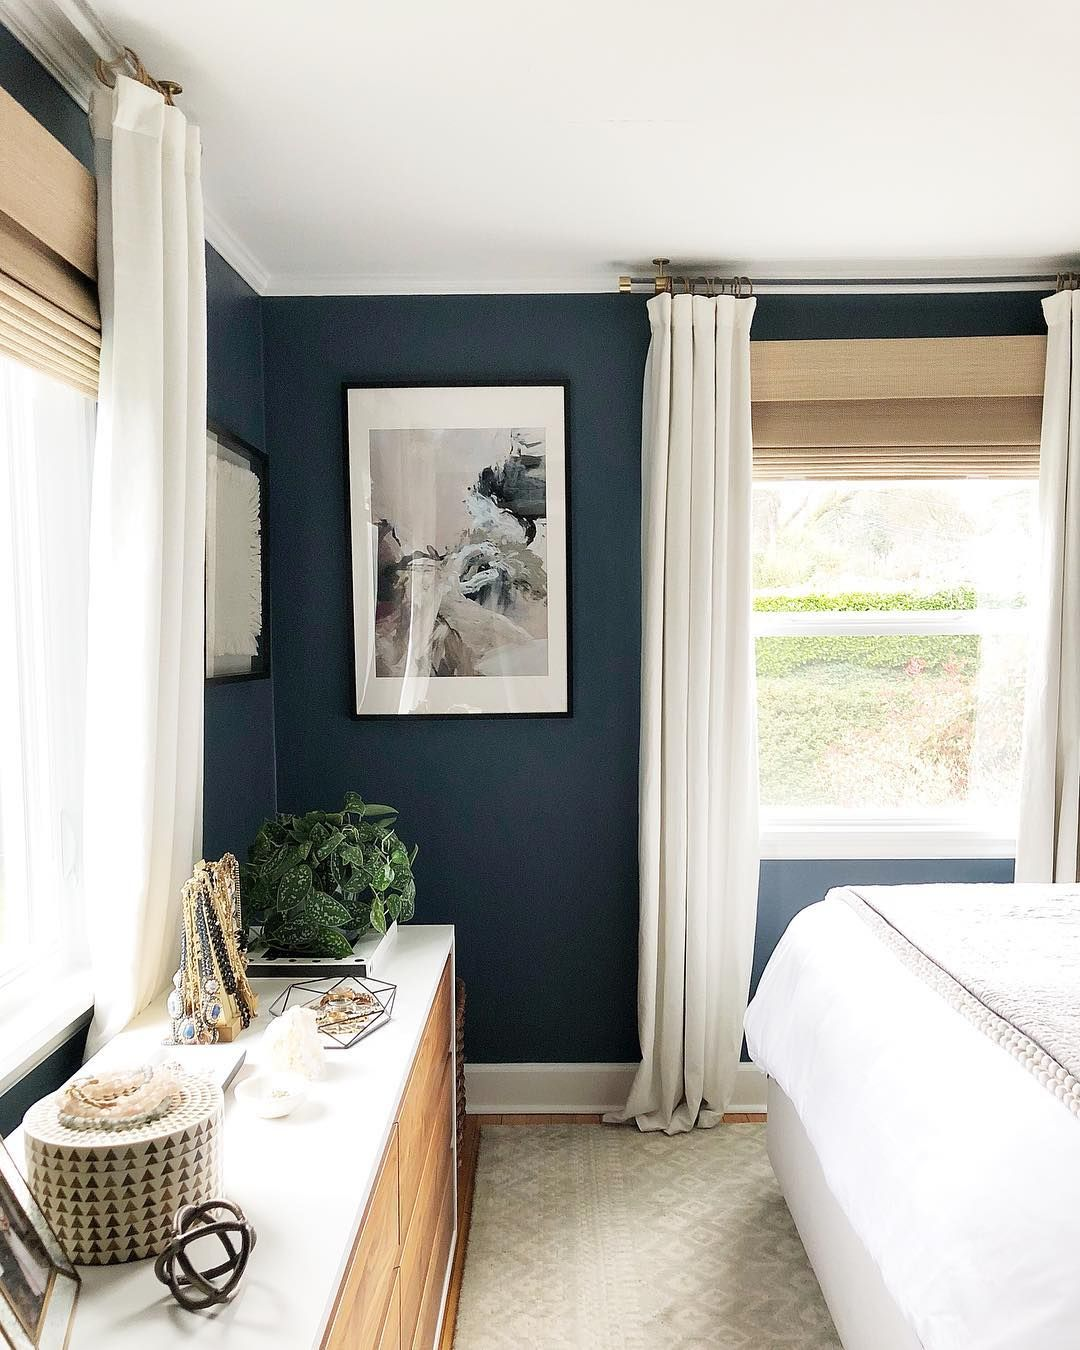 9,445 Followers, 826 Following, 196 Posts - See Instagram photos and videos from Emily | Cohesively Curated (@cohesivelycurated) #masterbedroompaintcolors